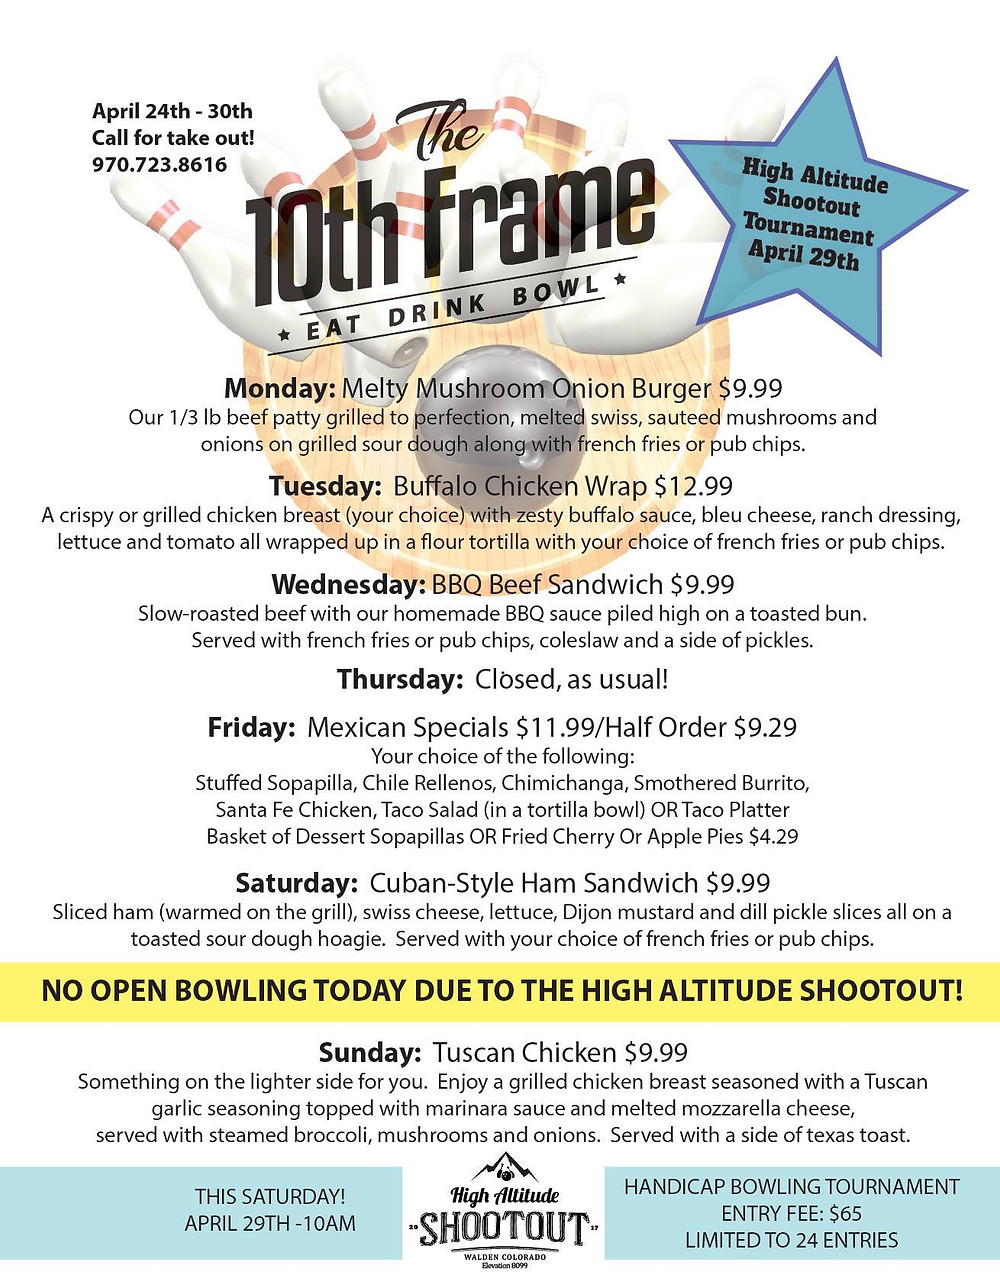 The 10th Frame Specials this week